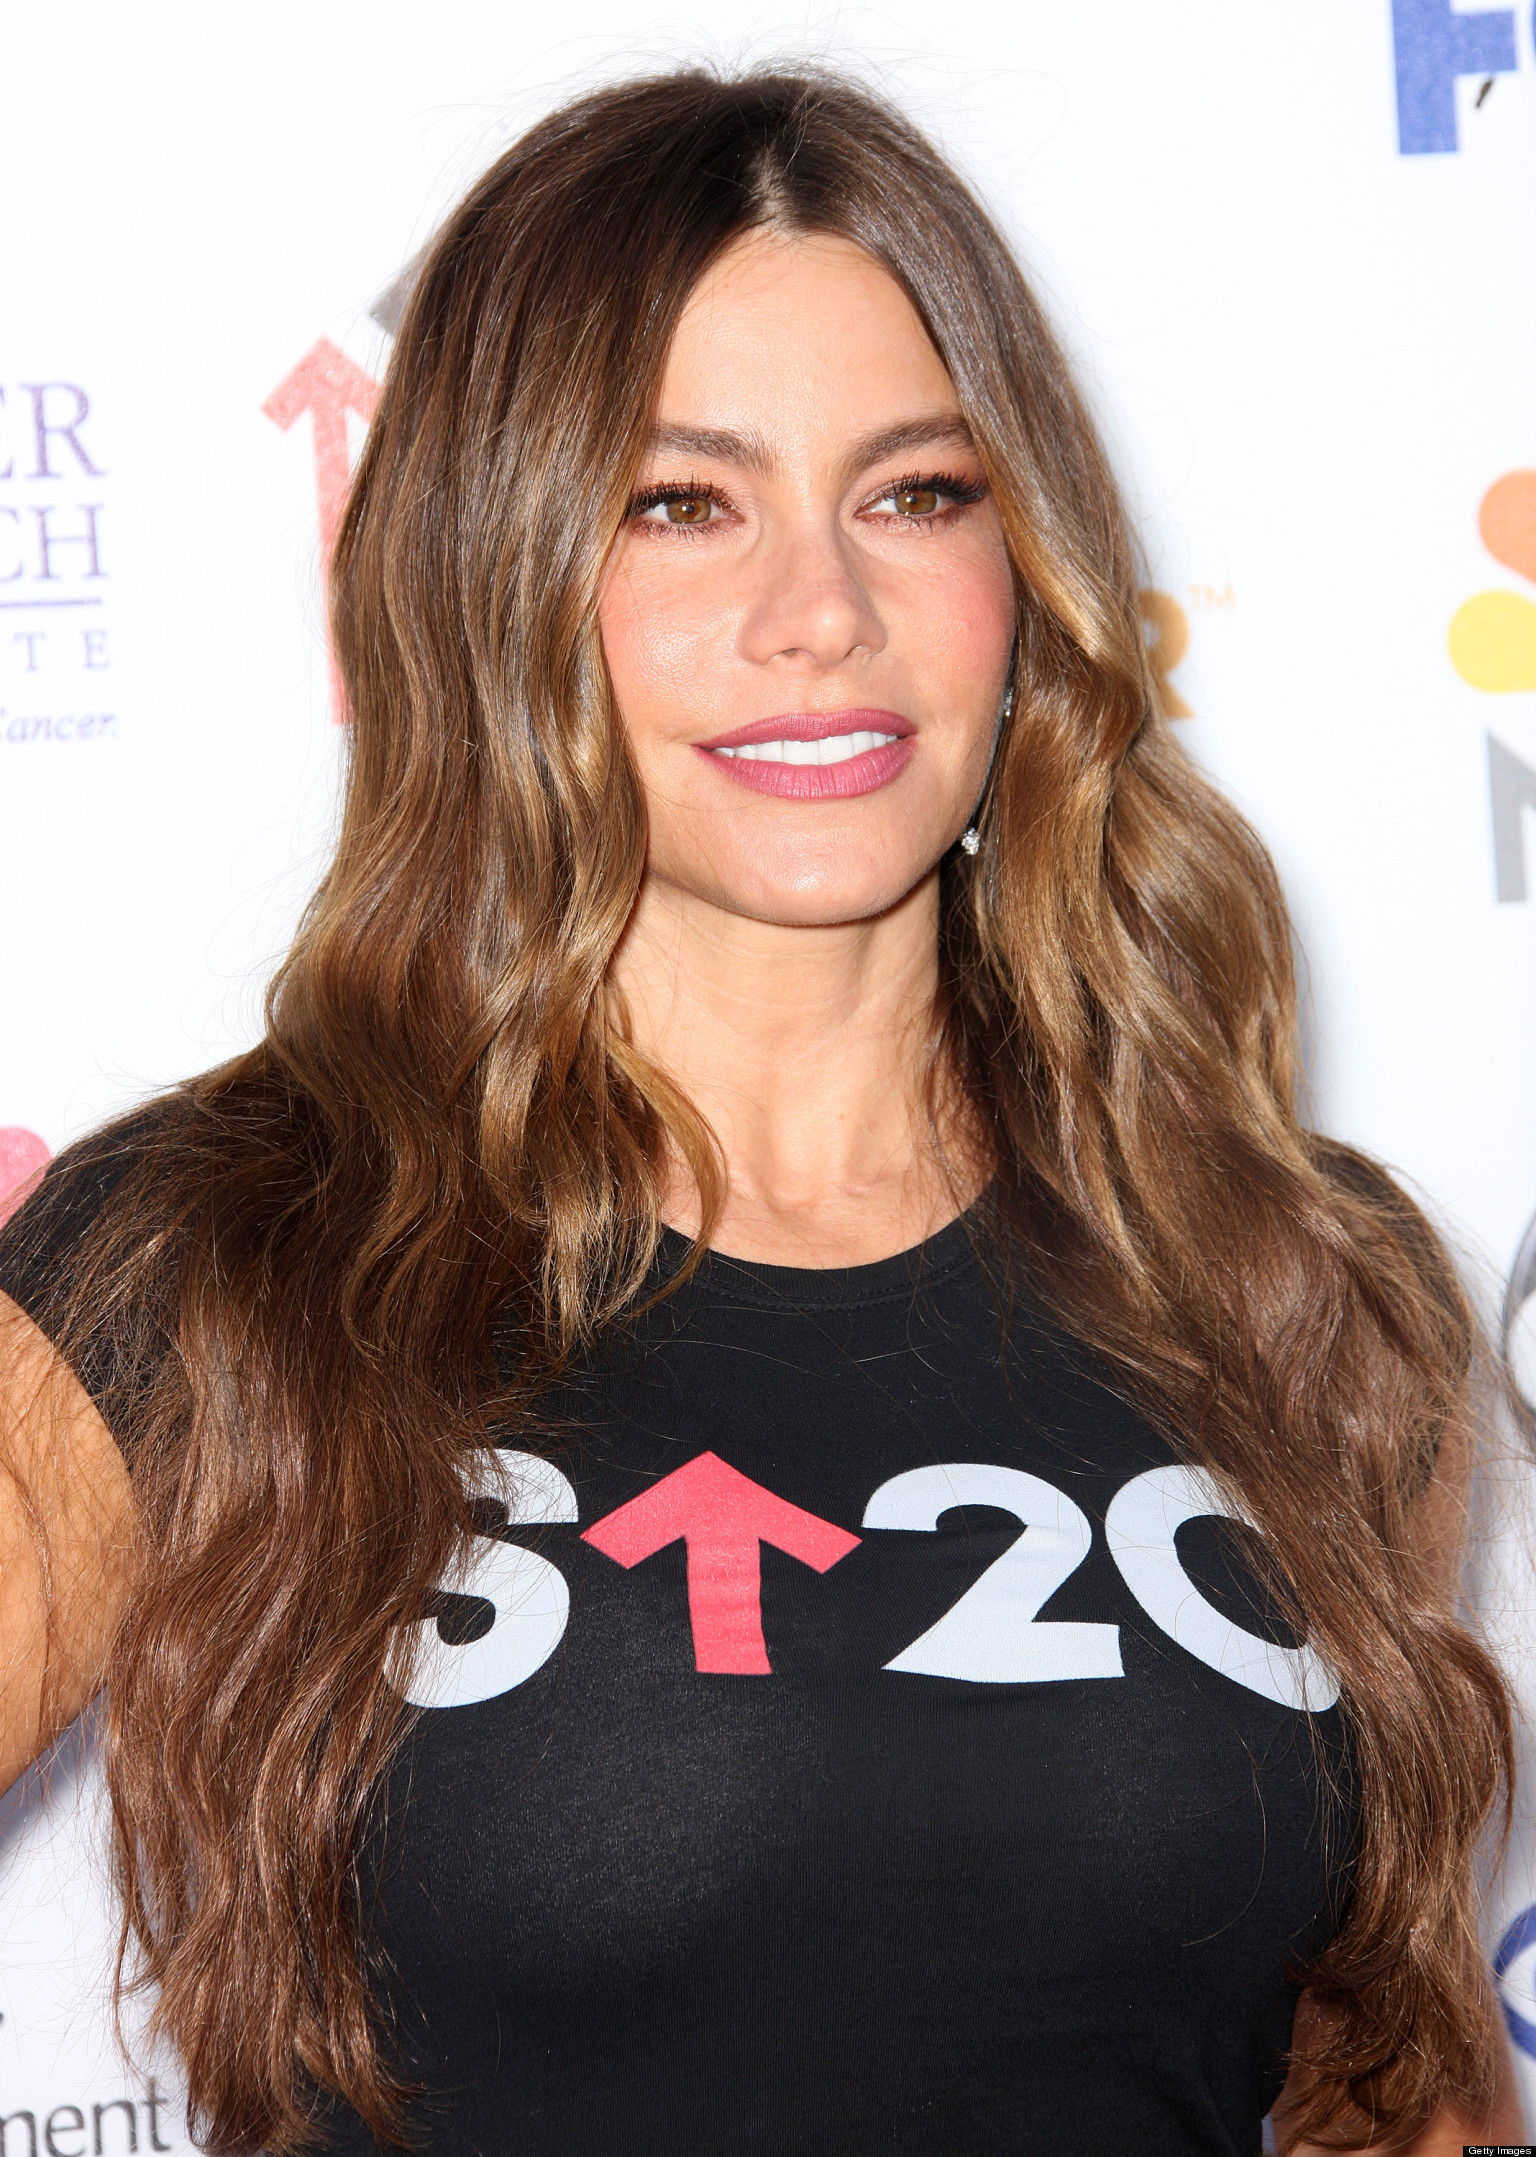 Sofia Vergara Opens Up About Her Battle With Cancer